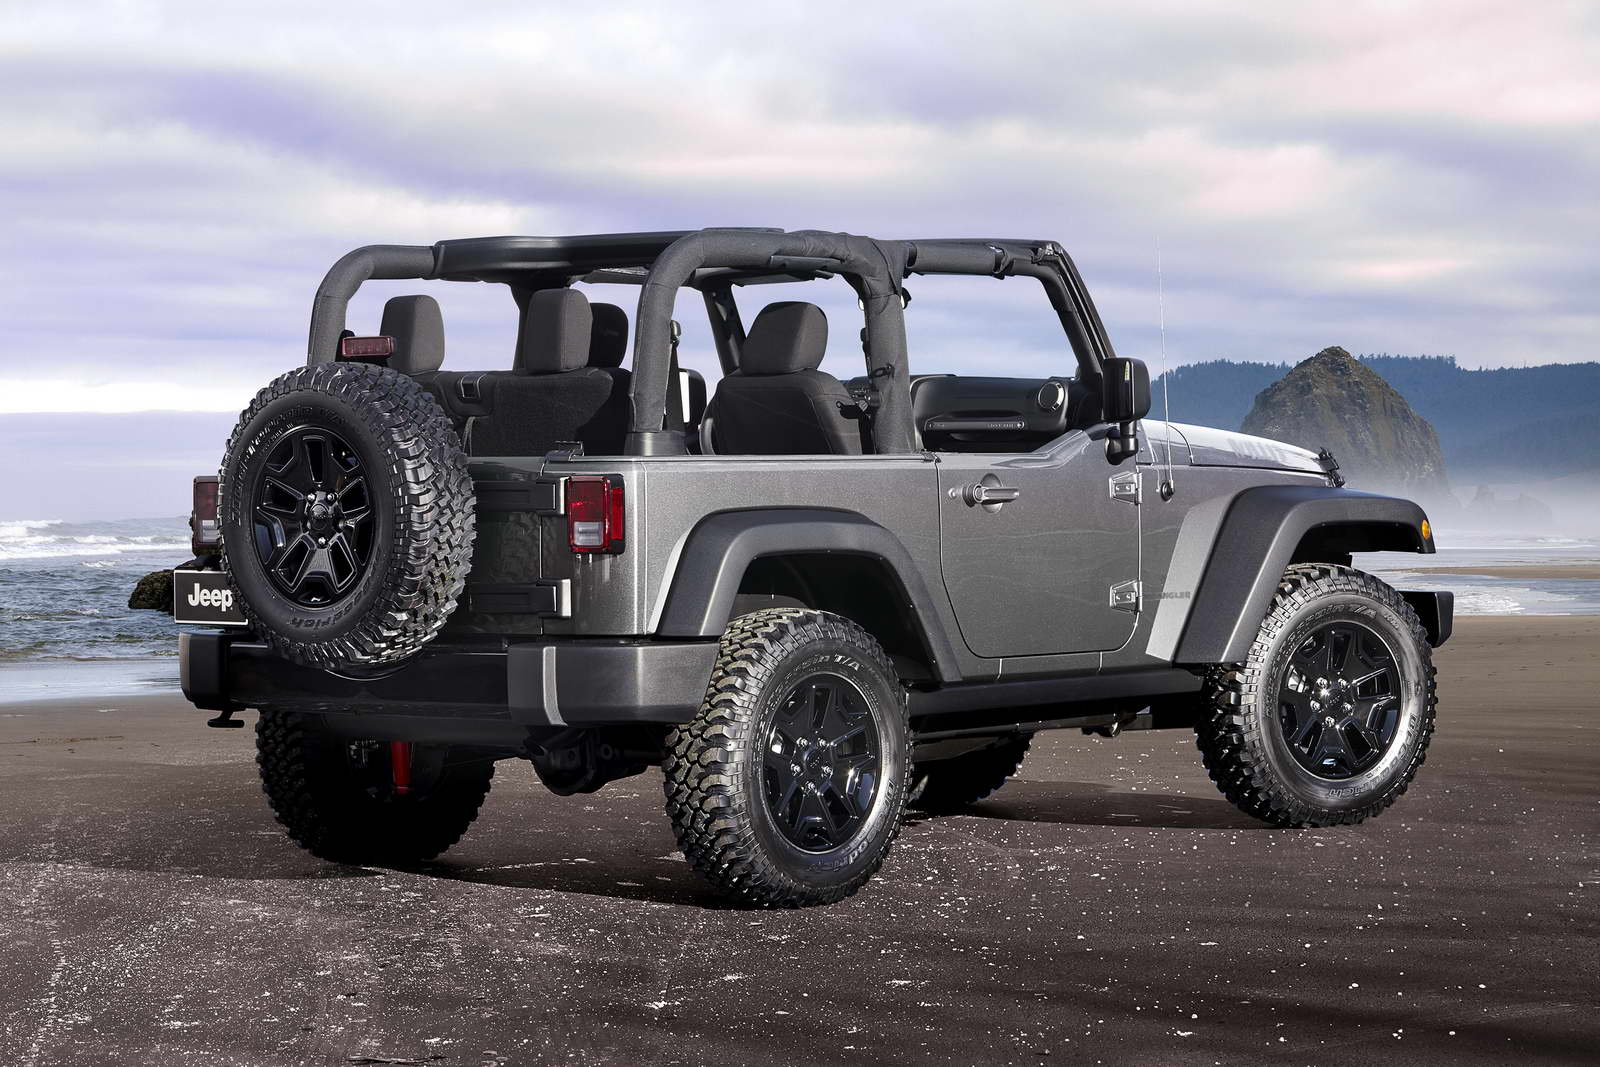 2018 Jeep Wrangler To Get 8-Speed Auto, Aluminum Body